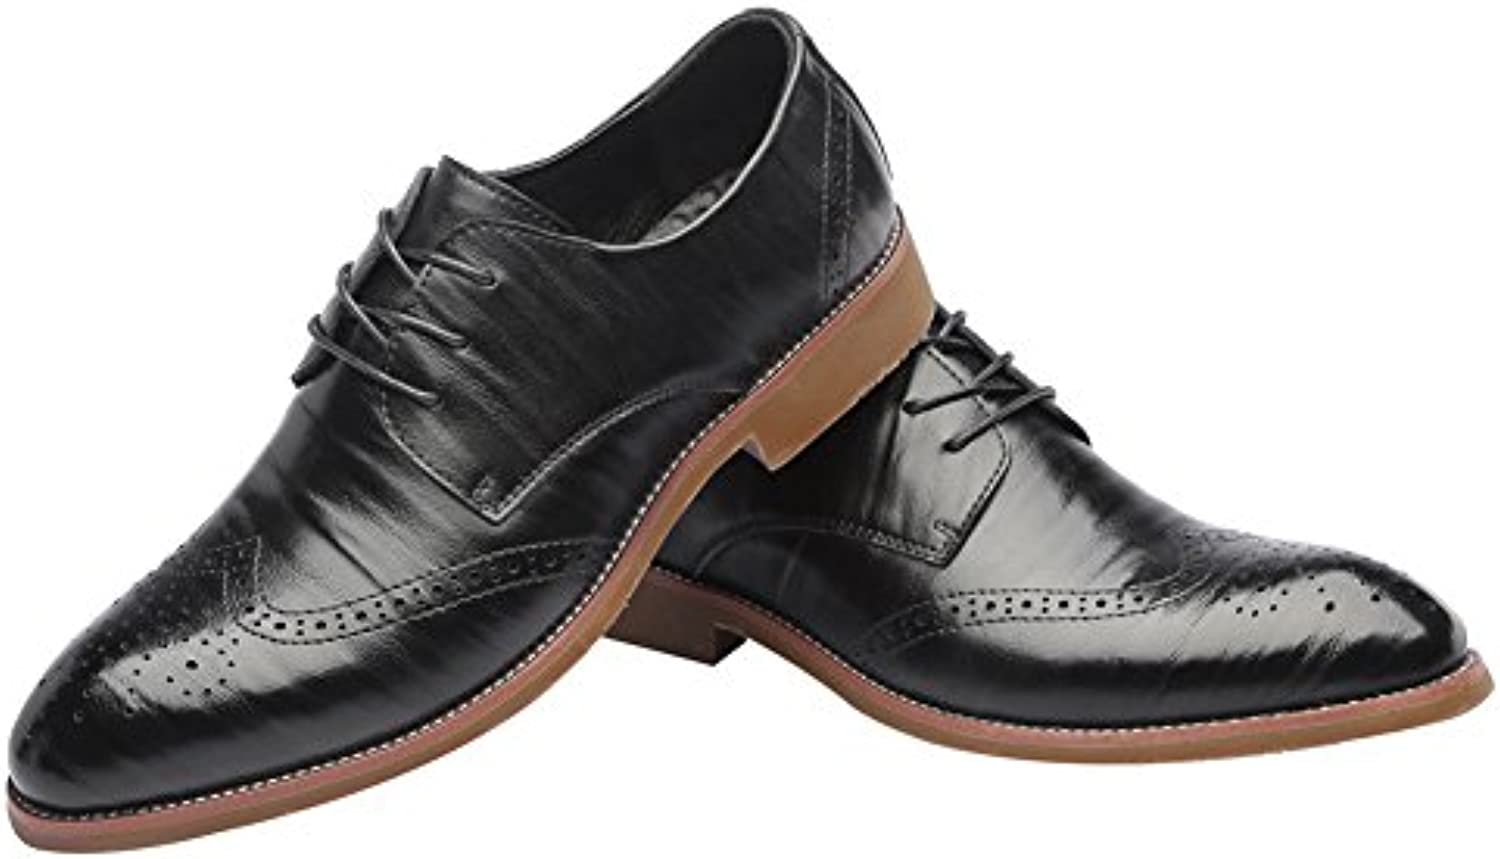 Herrenschuhe Leder Fruumlhjahr Herbst Komfort Lace up Driving Schuh Wies Schuhe Leichtes Breathable Large Size Formale